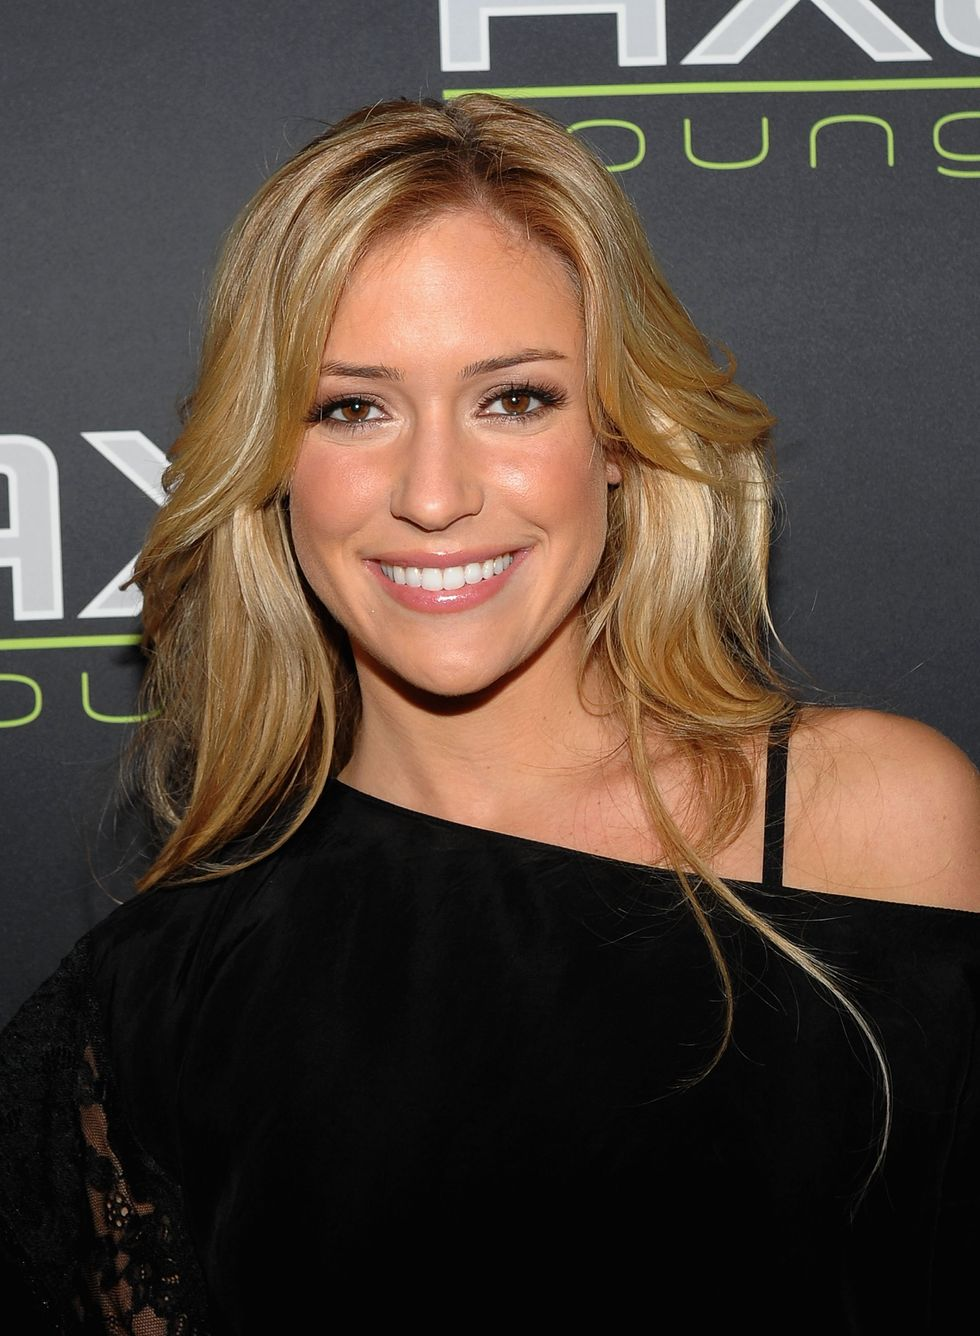 kristin-cavallari-axe-lounge-at-1oak-in-new-york-01